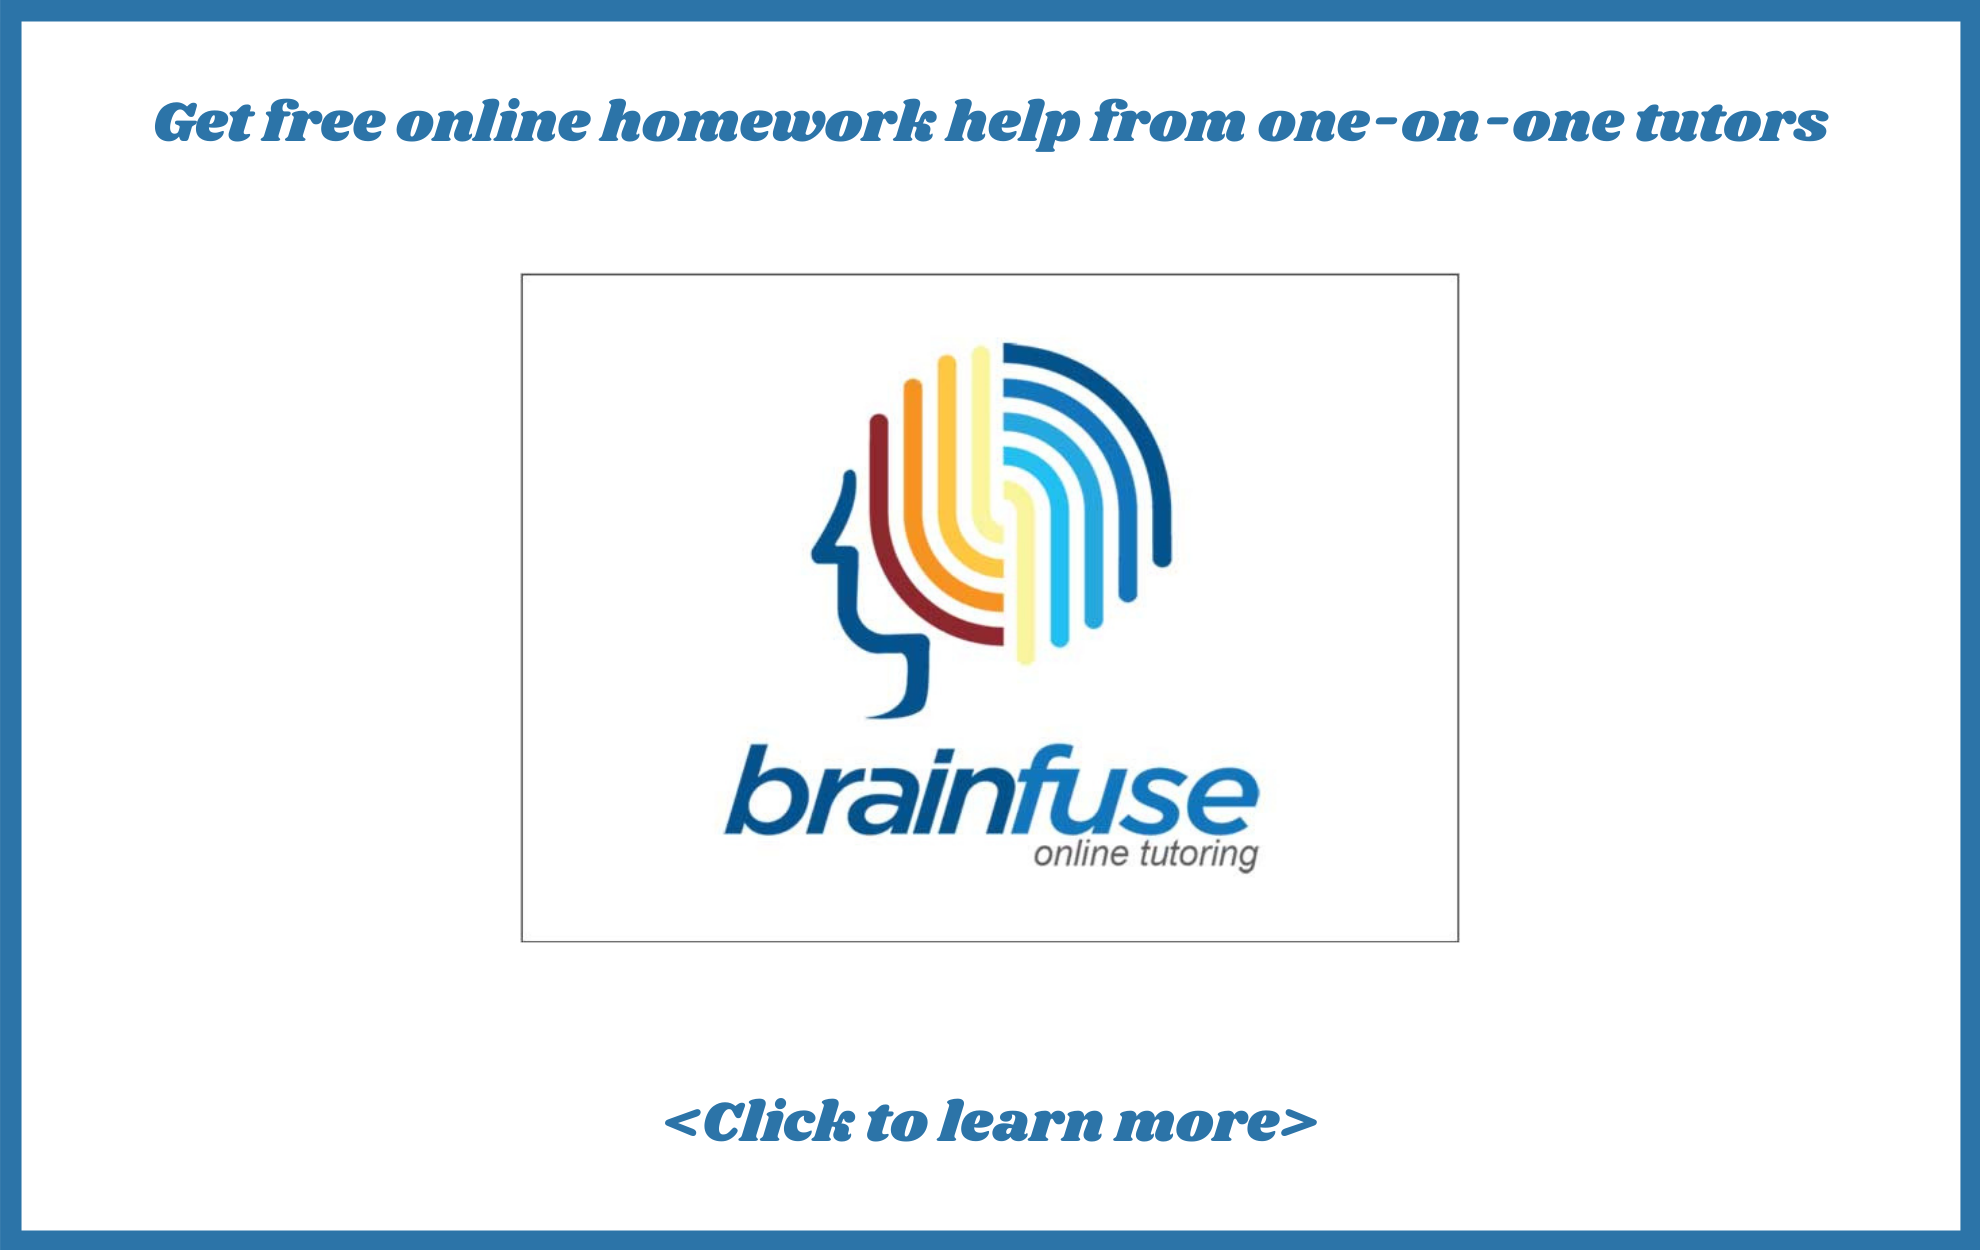 Click to learn more about online homework help